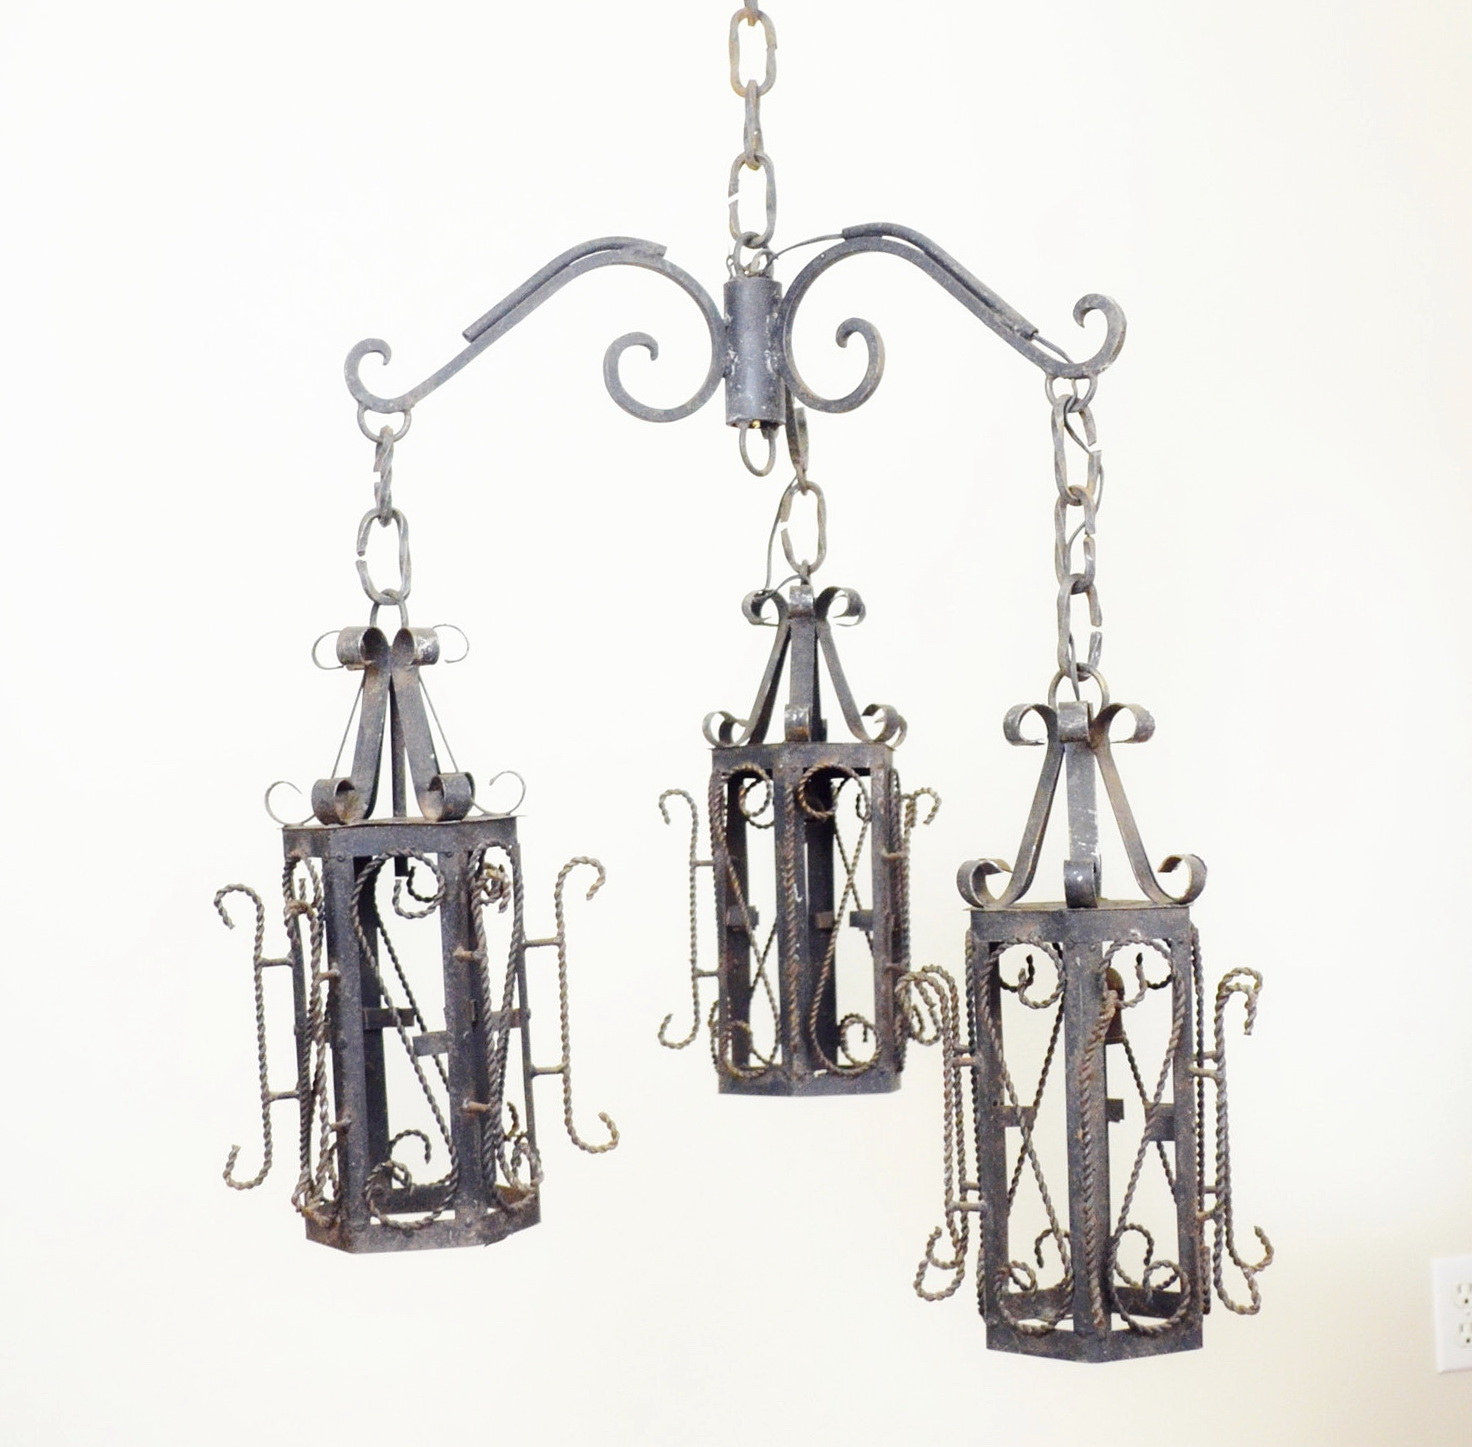 Wrought iron chandeliers india home design ideas wrought iron chandeliers india arubaitofo Images